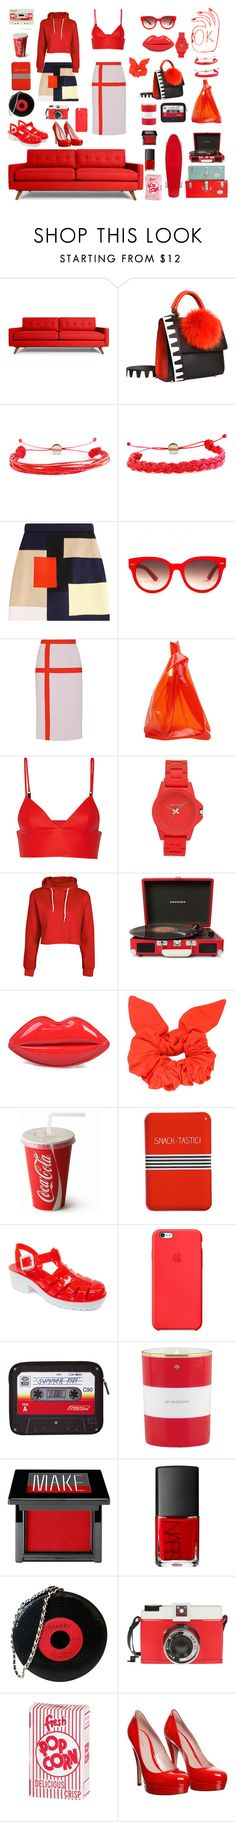 """""""The Red Life"""" by cloudwatcher101 ❤ liked on Polyvore featuring Thrive, Les Petits Joueurs, Domo Beads, MSGM, Equipment, Bibhu Mohapatra, Jil Sander, T By Alexander Wang, Vince Camuto and Boohoo"""